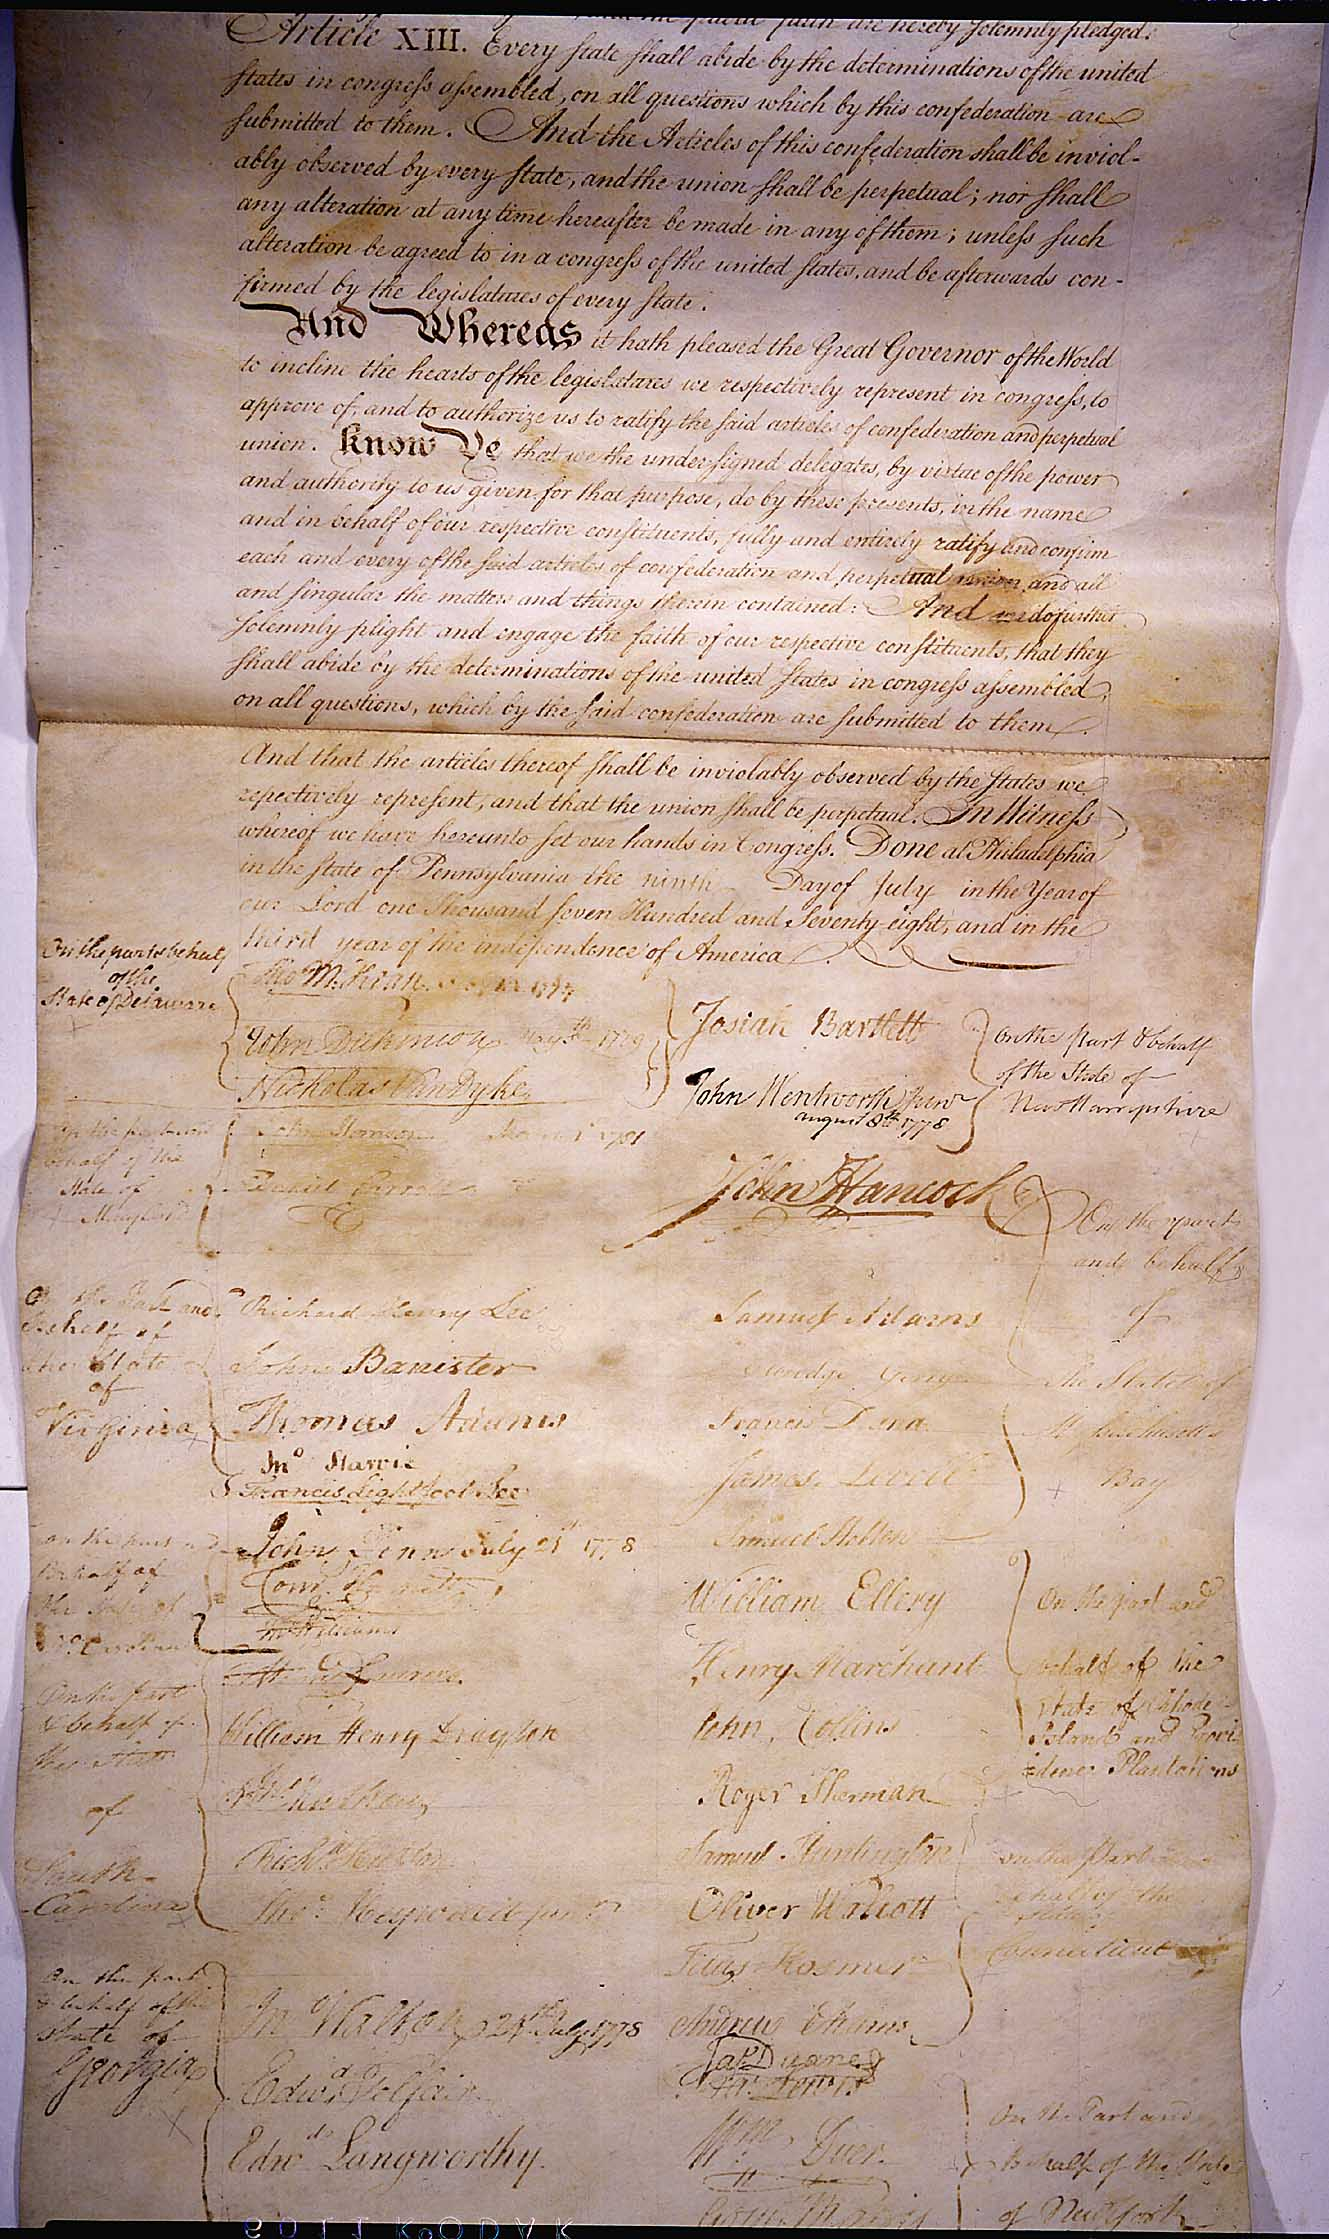 from 1781 to 1789 the articles of confederation provided the united states with an effective governm